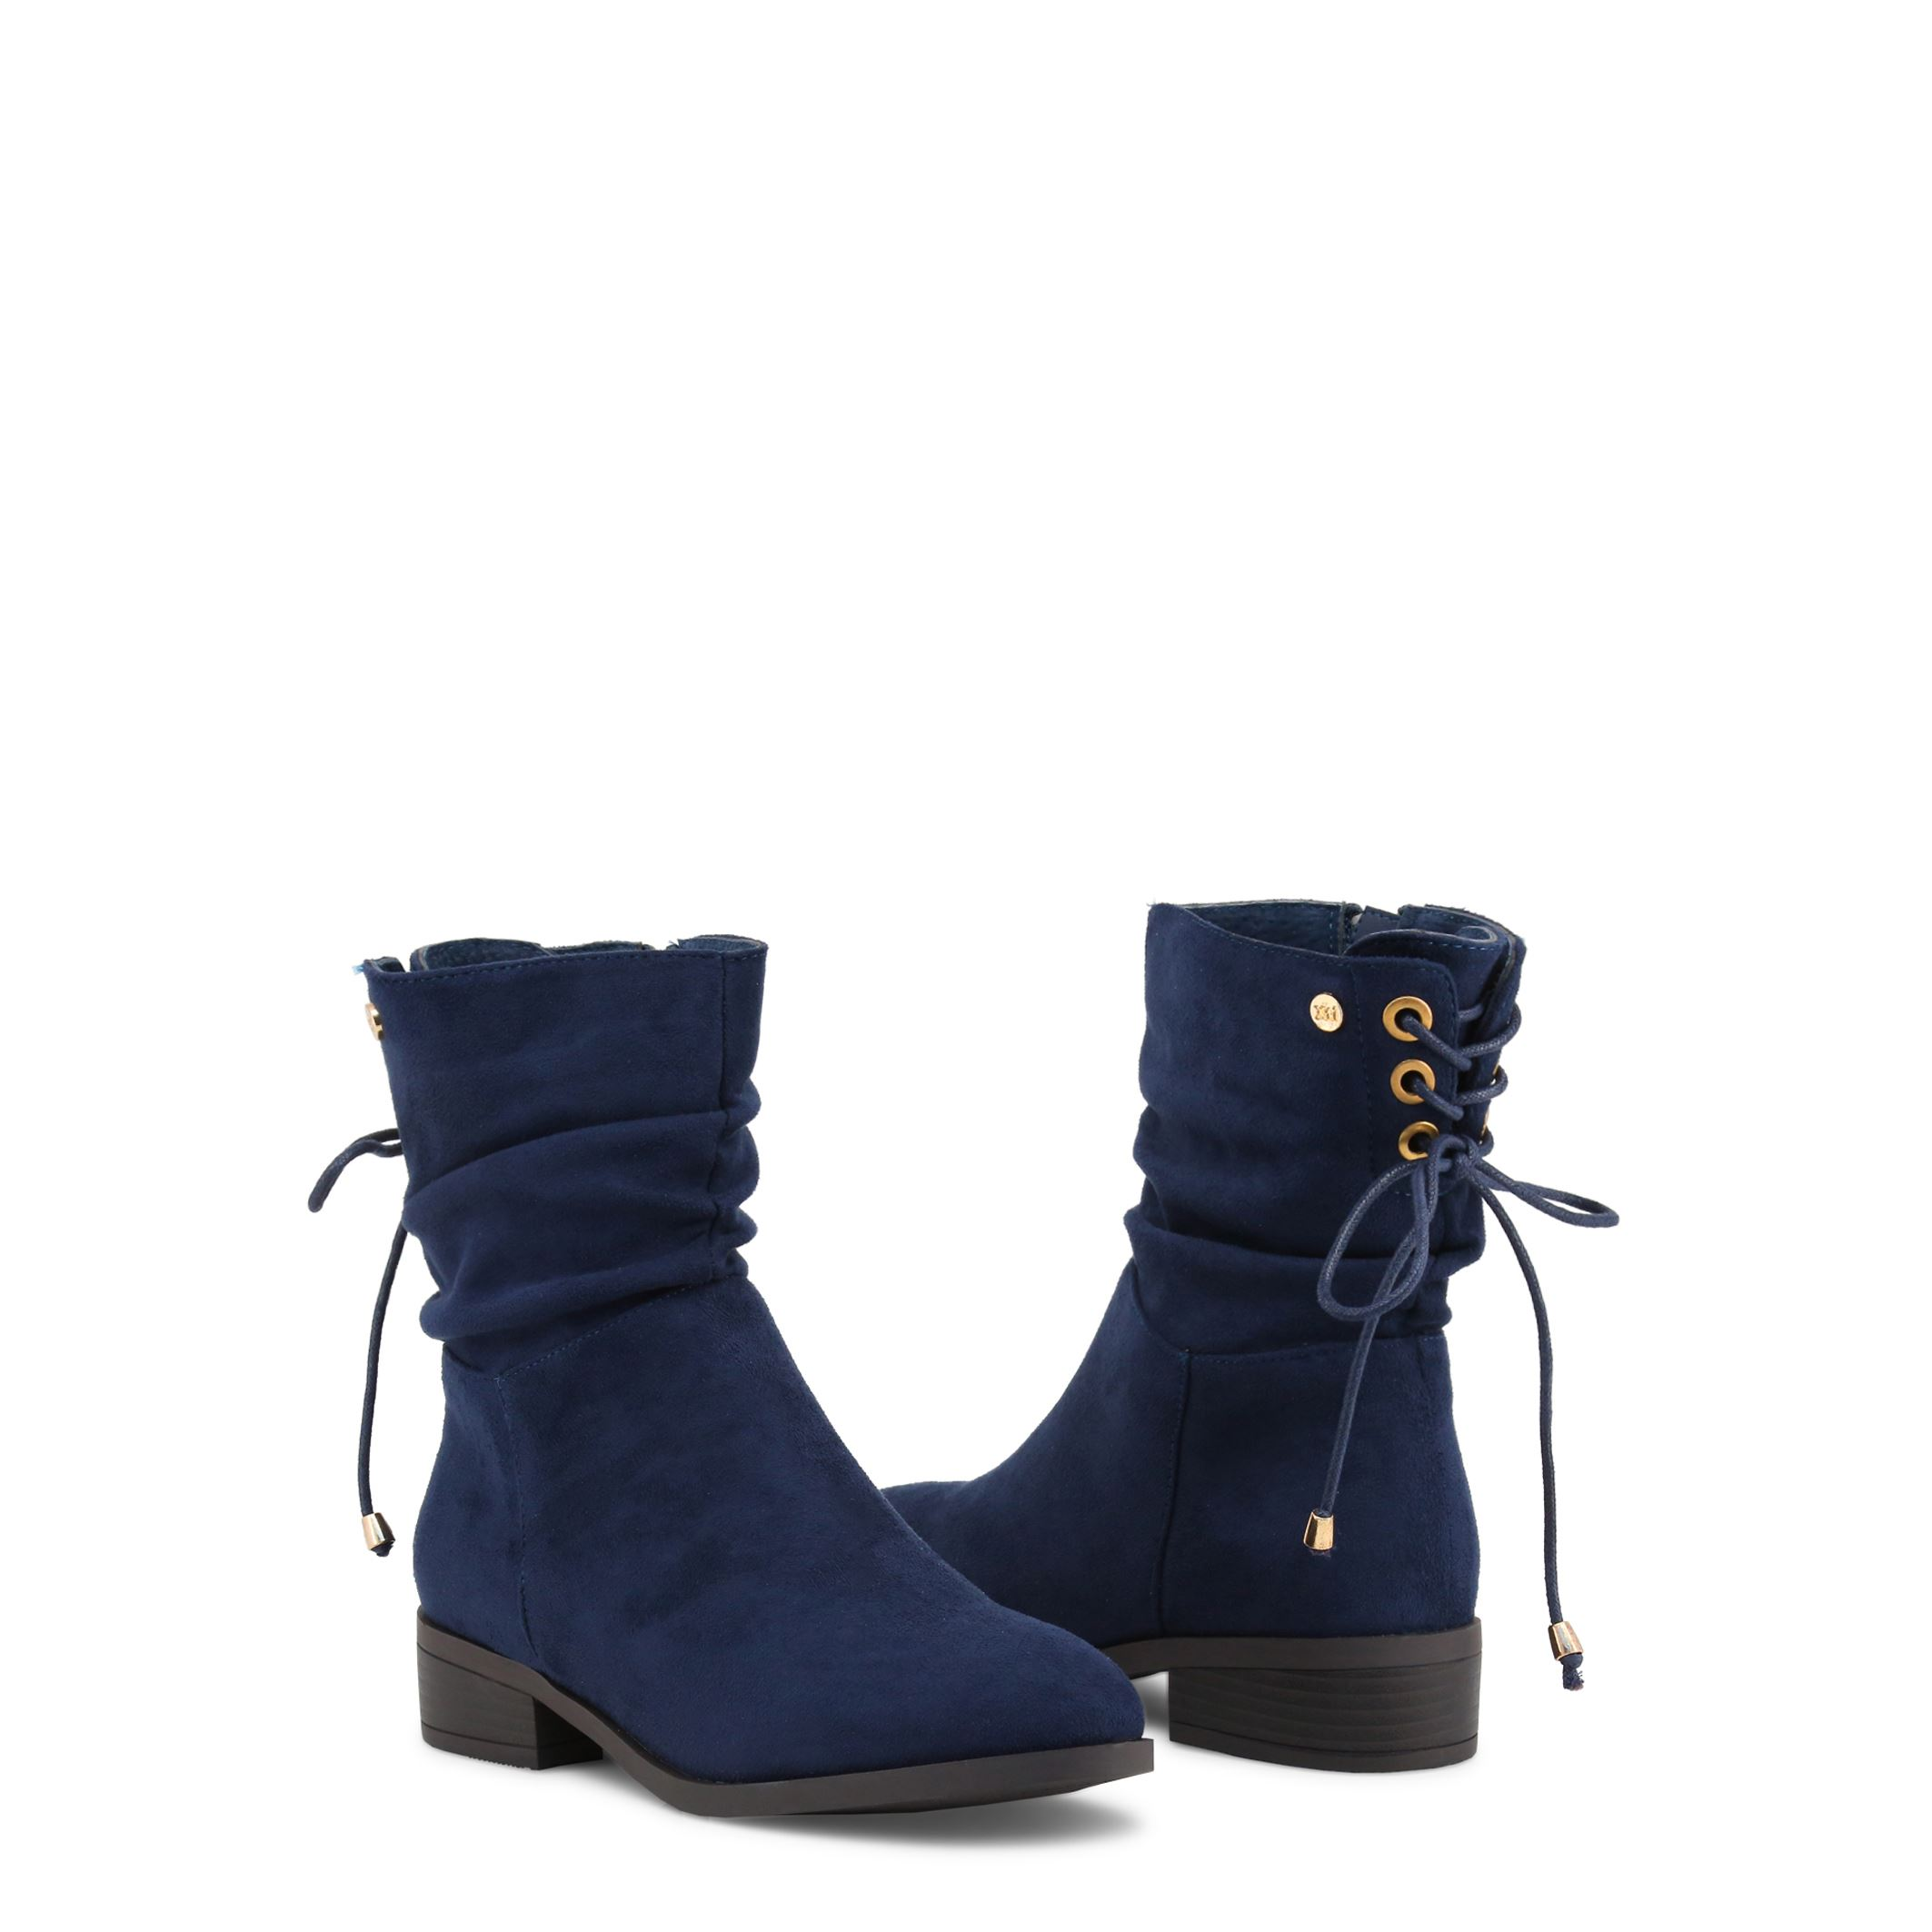 Xti Womens Navy Blue Ankle Boots Side Zip Fastening Rear Lace